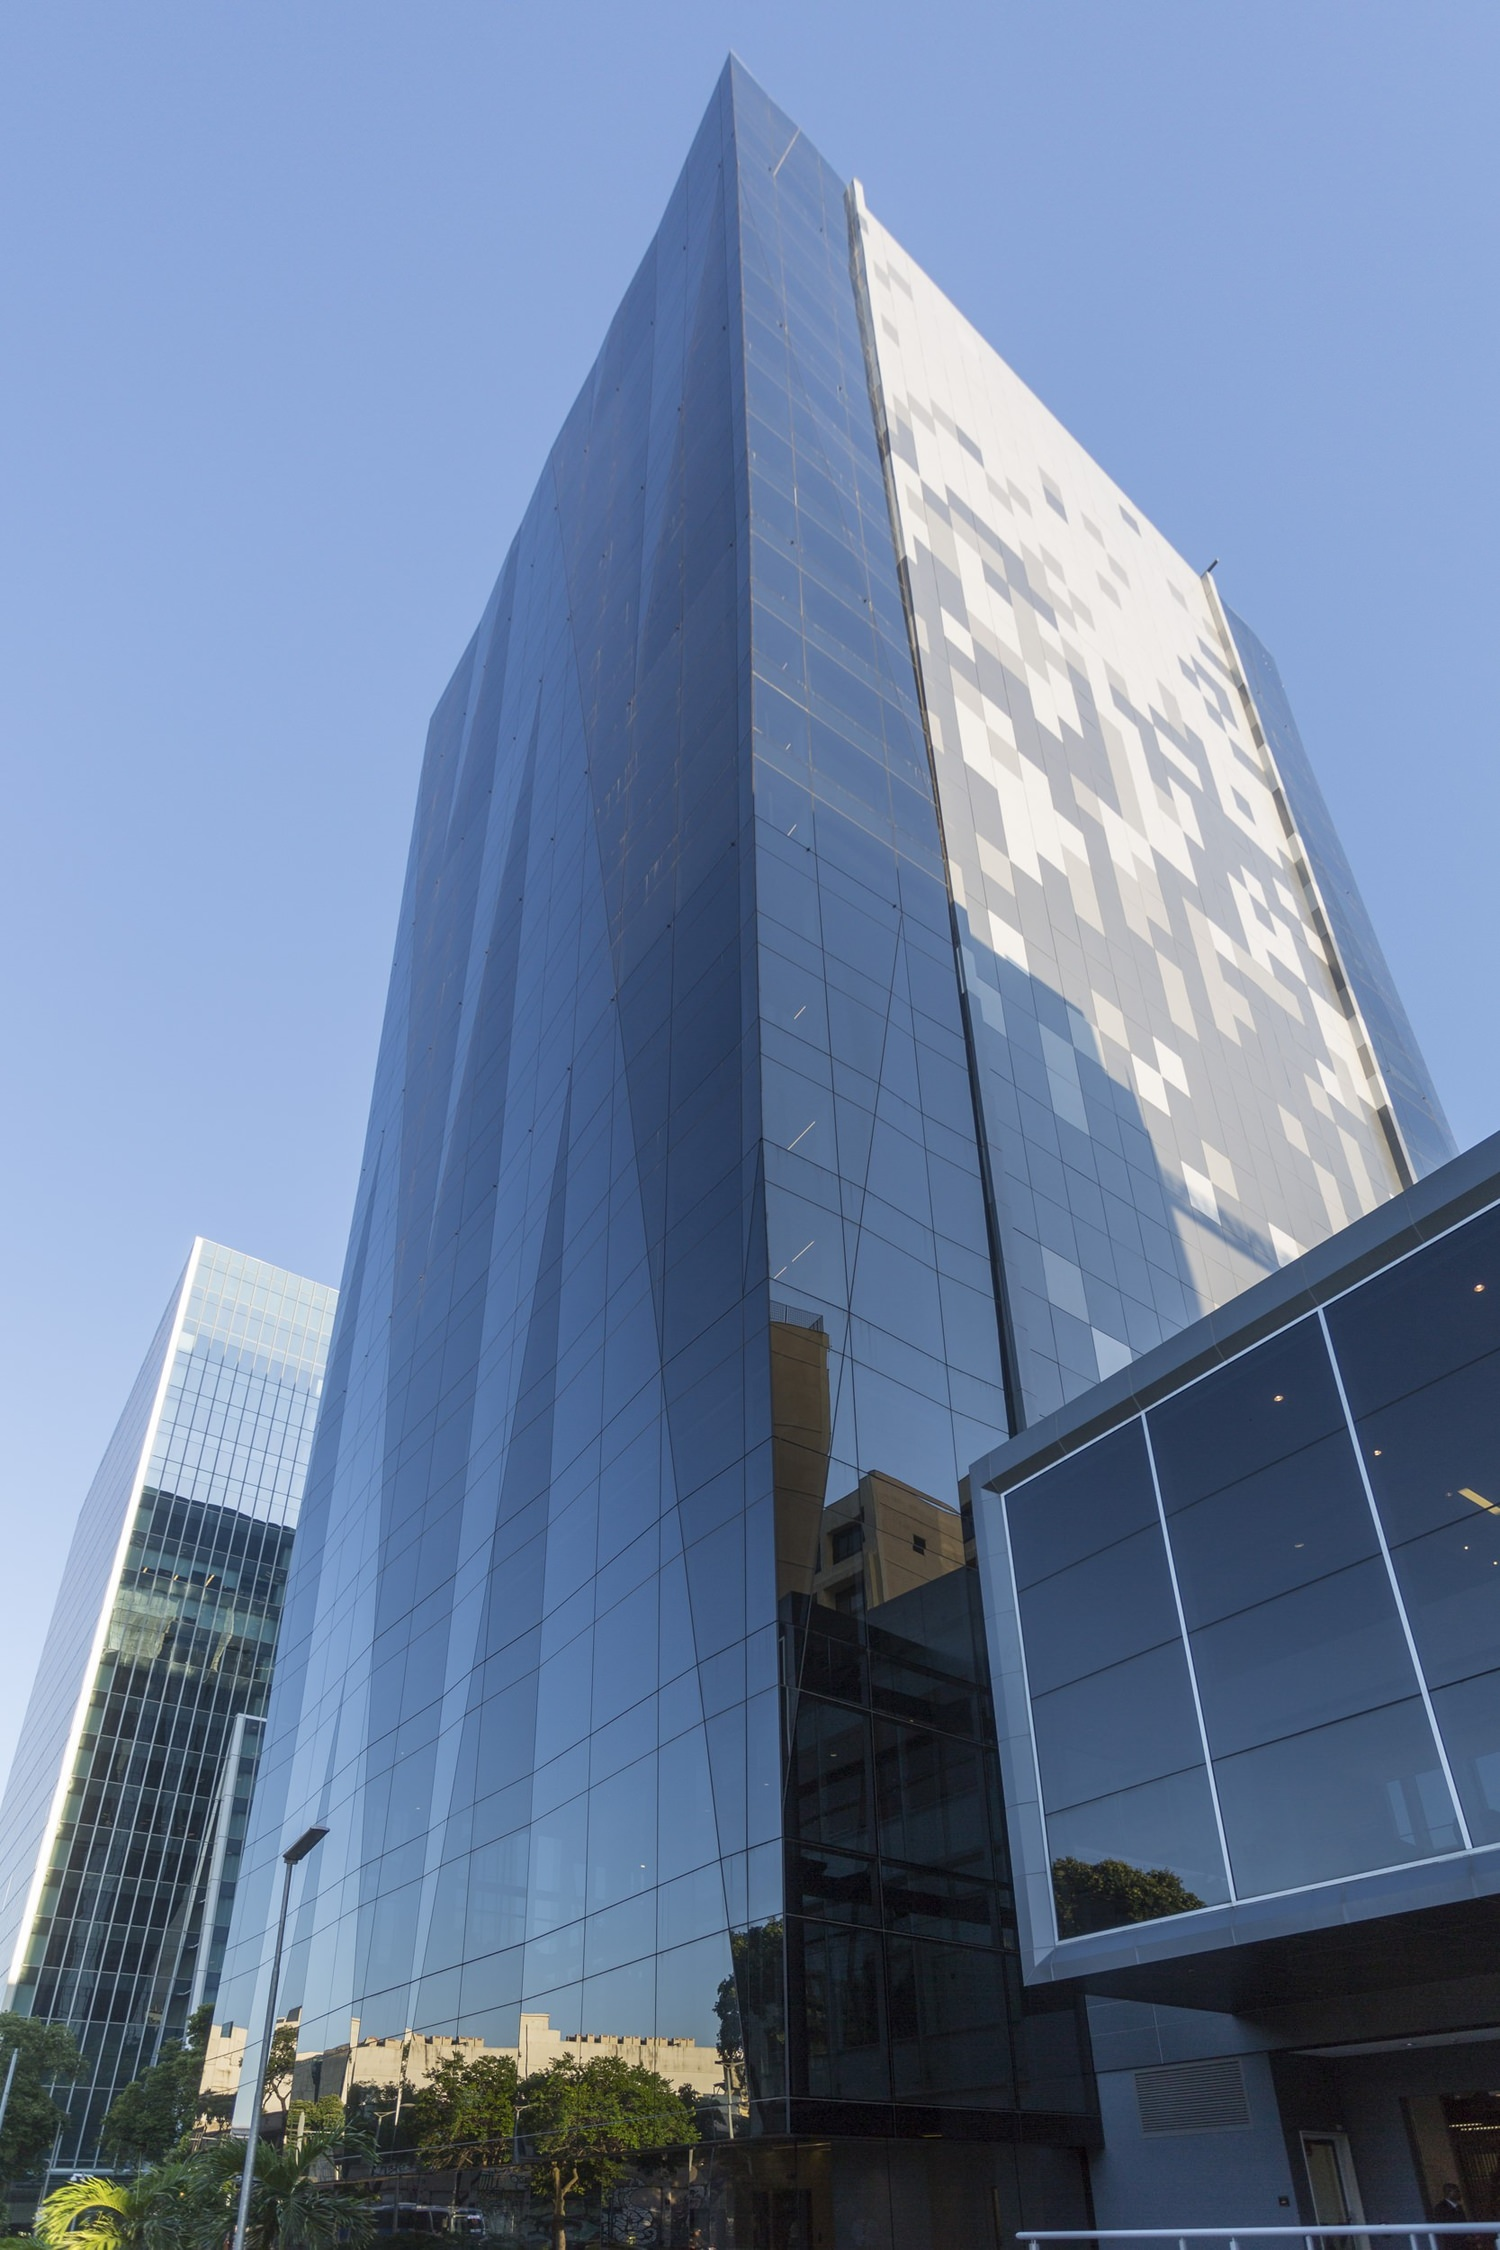 A skyscraper that is covered in glass windows next to other buildings under the blue sky.